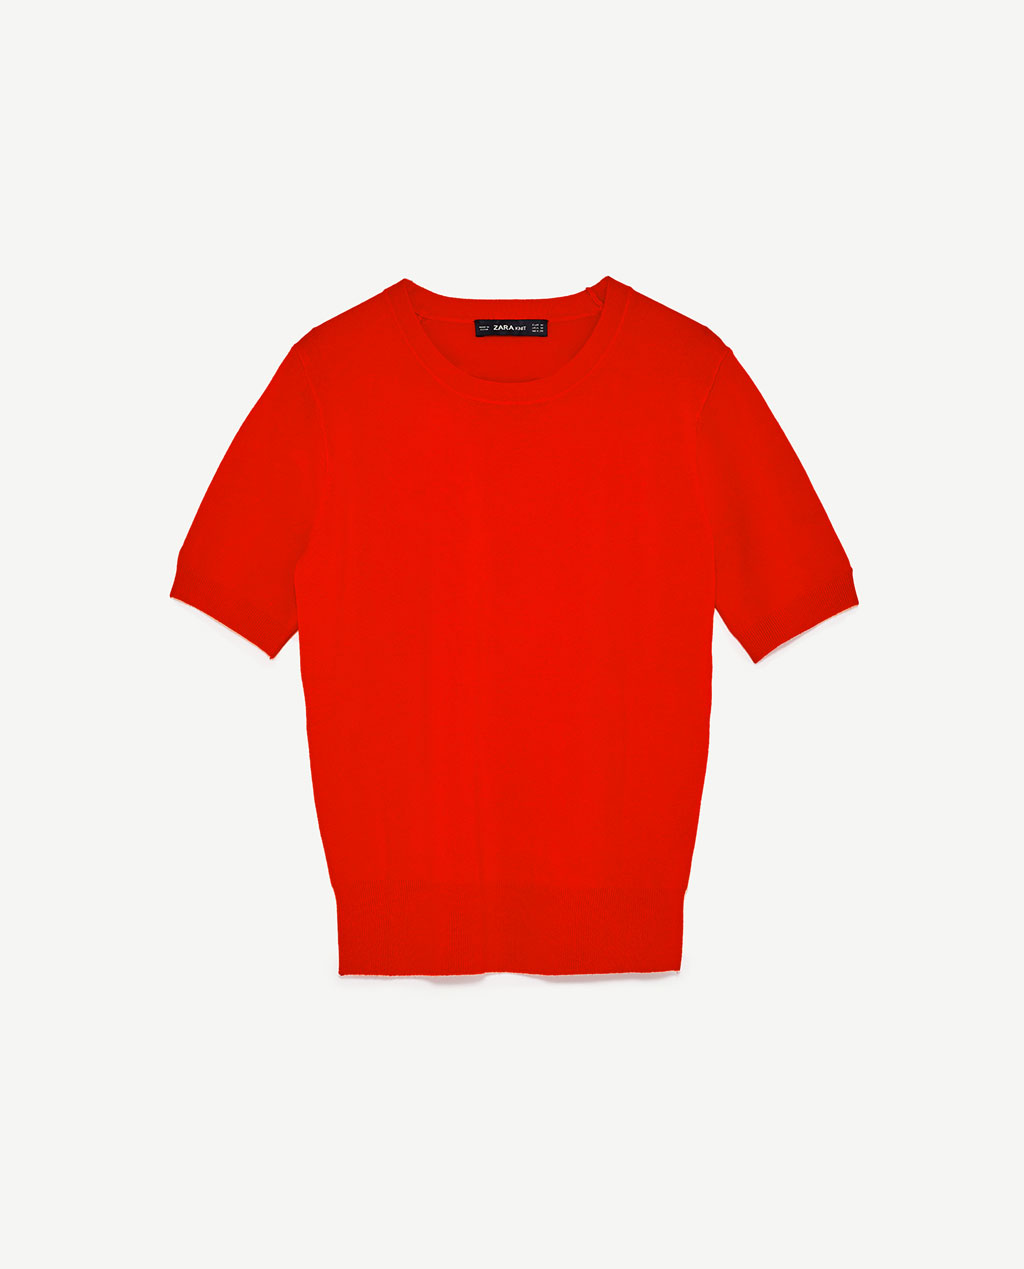 This basic short sleeve knit with the right amount of fit and in bright tomato red is a great basic. Jazz it up with cool accessories or with the blazer on top.